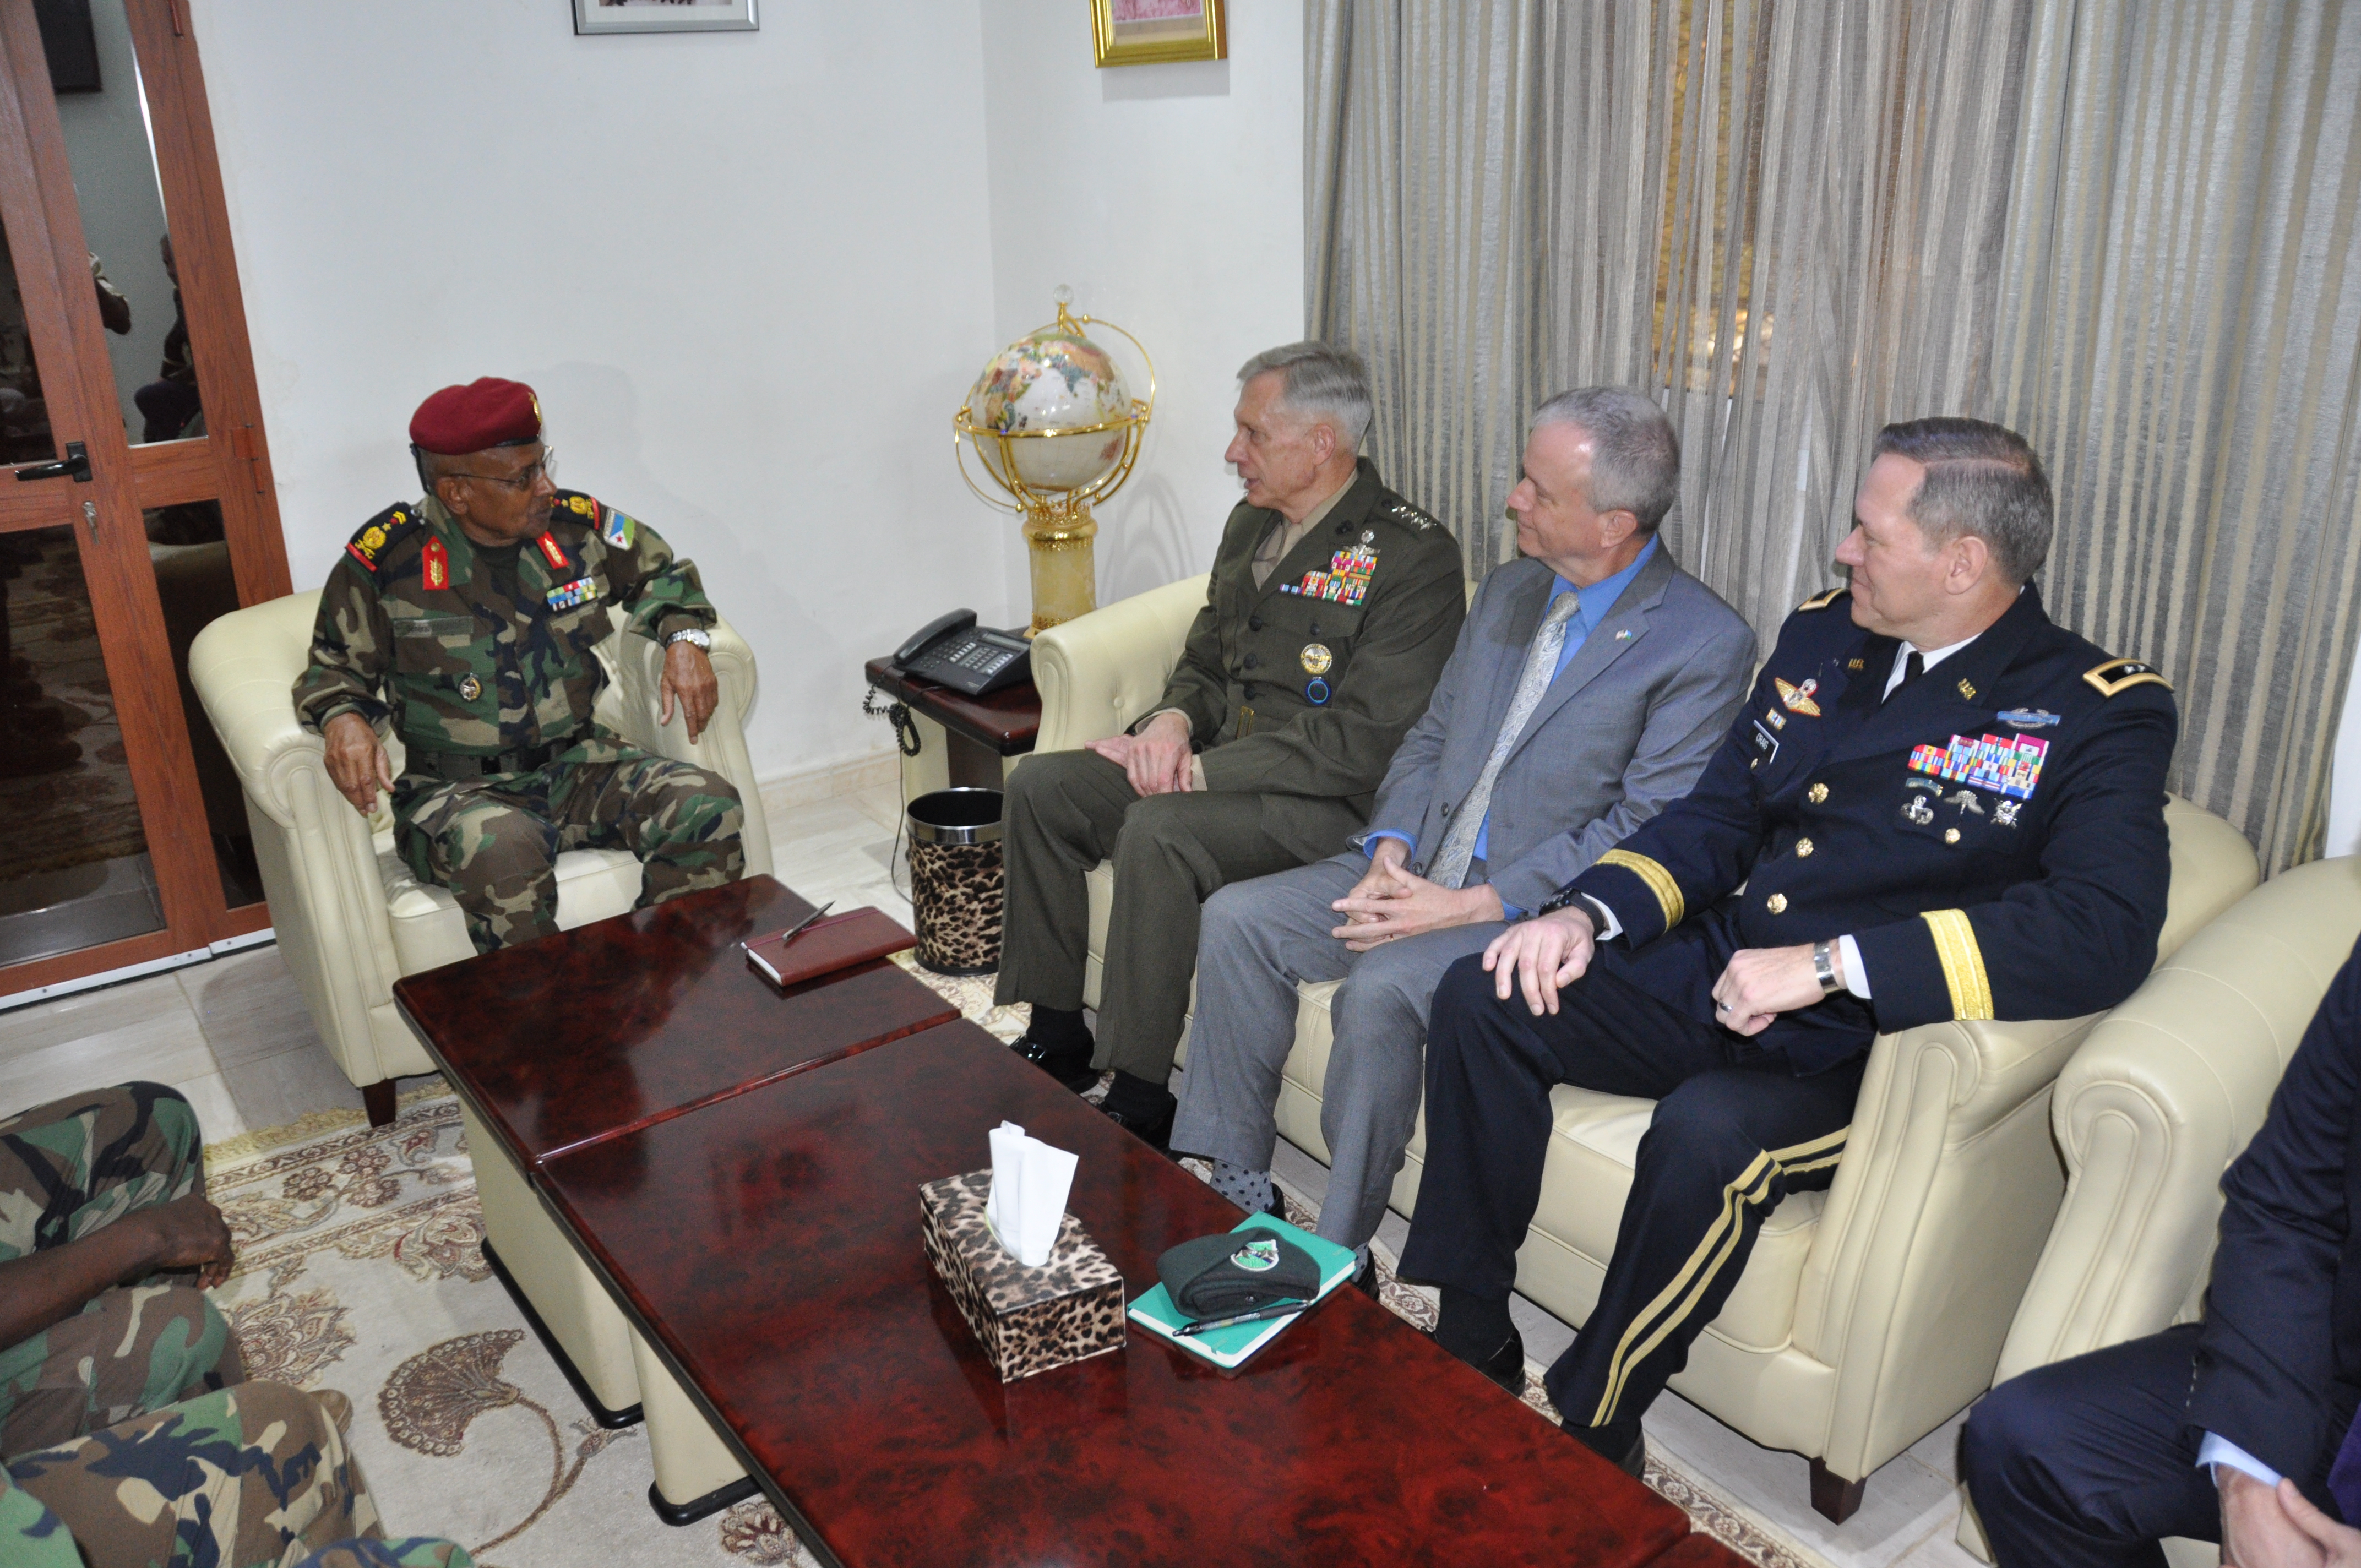 "DJIBOUTI CITY, Djibouti—U.S. Ambassador to Djibouti Larry André and Gen. Thomas D. Waldhauser, commander of United States Africa Command (AFRICOM), met with Djibouti Chief of Defense Gen. Zakaria Cheikh Ibrahim on Nov. 29, 2018, Djibouti City, Djibouti.  During the meeting, the leaders discussed the growth and development of Djiboutian security forces.  ""Our command's core mission is centered on helping our partners to strengthen defense capabilities,"" said Waldhauser.  ""We concentrate our efforts on helping African nations and regional organizations build capable and professional militaries that respect human rights, adhere to the rule of law, and more effectively contribute to stability in Africa.""